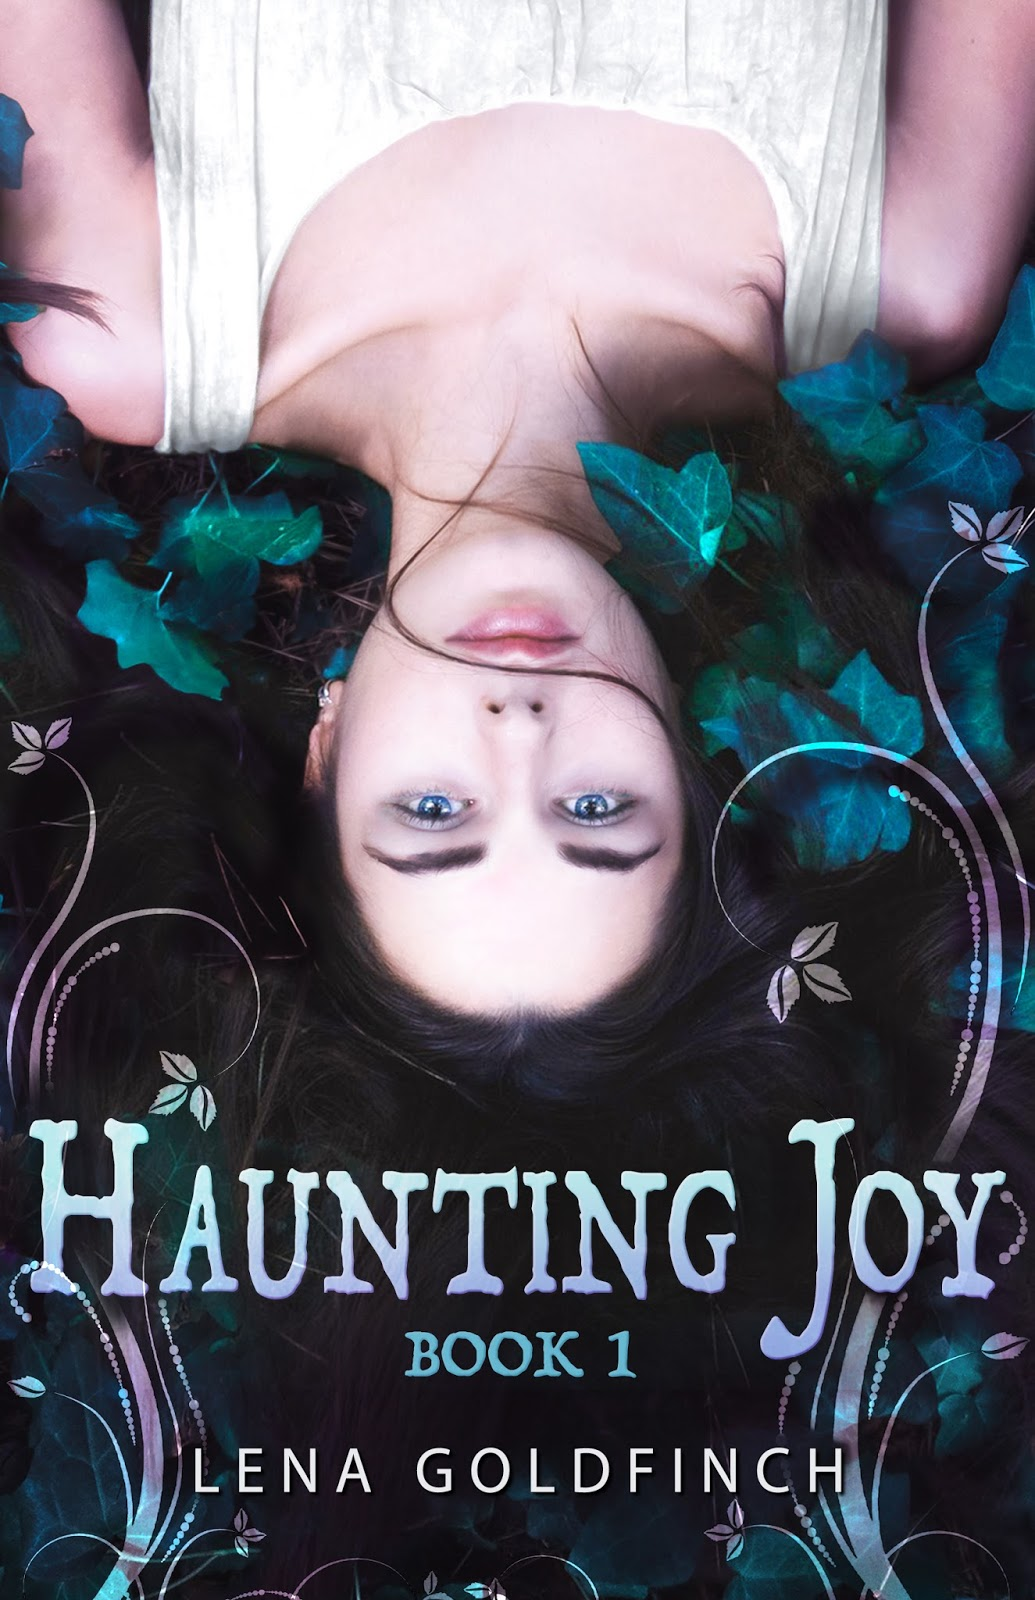 Haunting Joy Book 1 by Lena Goldfinch http://www.amazon.com/gp/product/B00FW6RXPM/ref=as_li_tl?ie=UTF8&camp=1789&creative=390957&creativeASIN=B00FW6RXPM&linkCode=as2&tag=indigo-web-20&linkId=2RVBH45CBW5MNZUN